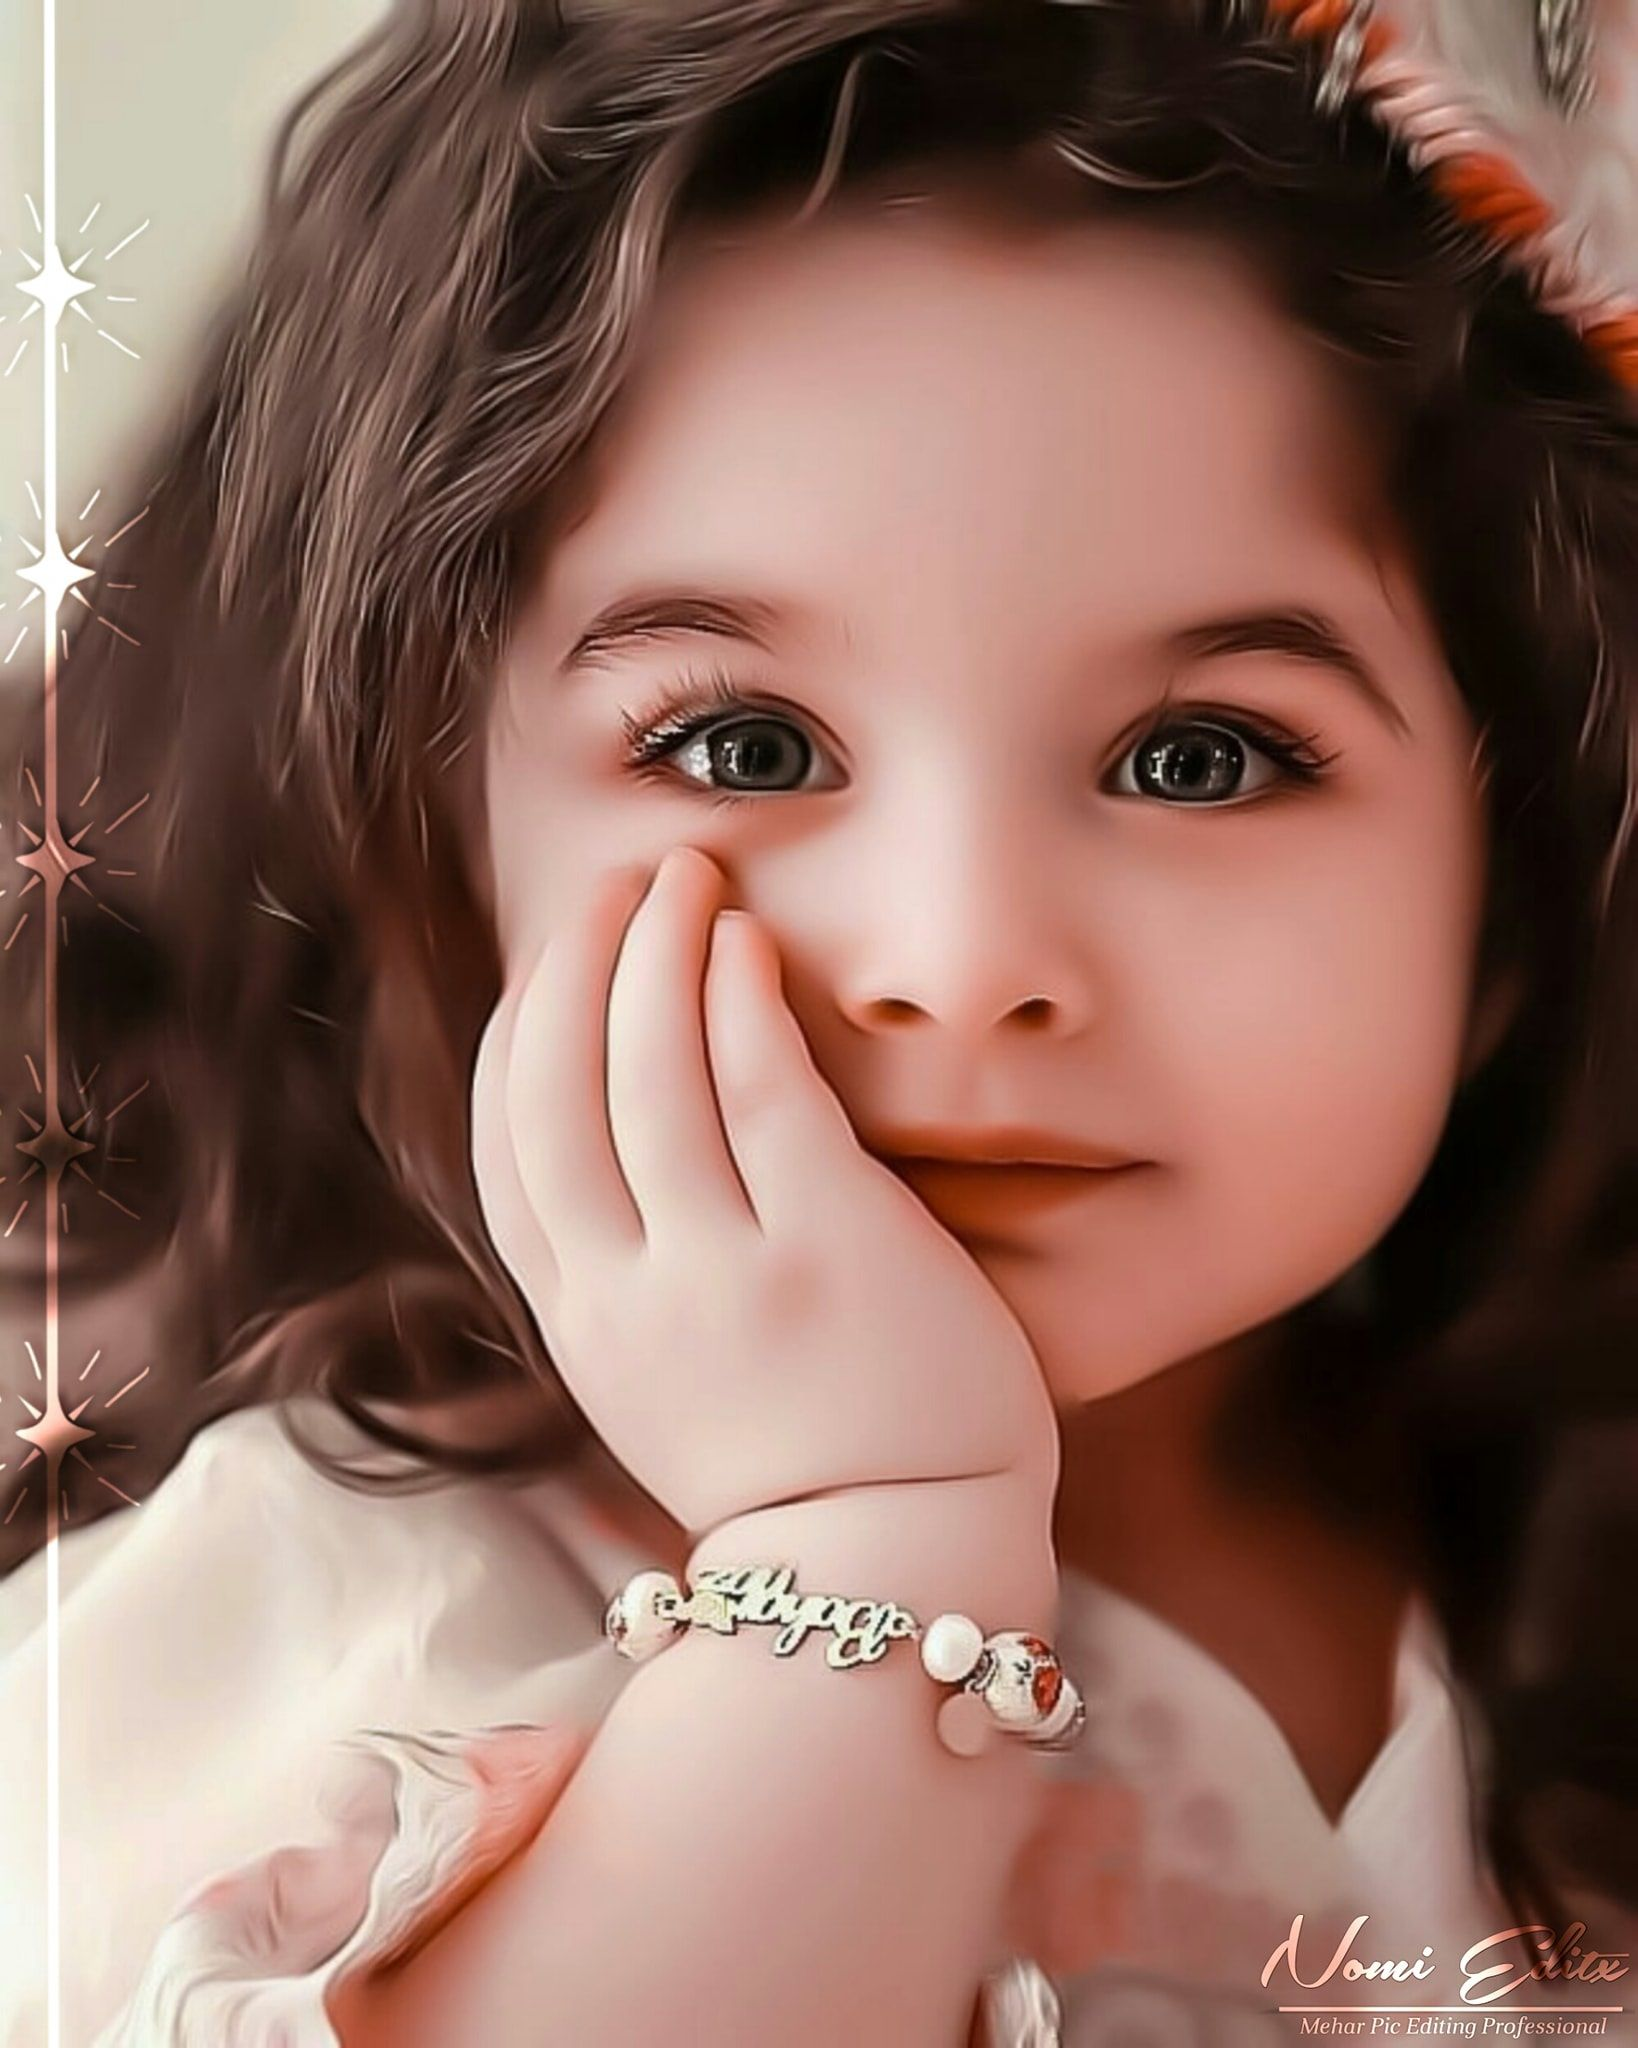 Cute Baby Hd Wallpaper Sweet Baby Photos Wallpapers Cute Little Baby Girl Cute Baby Girl Images Baby Girl Images